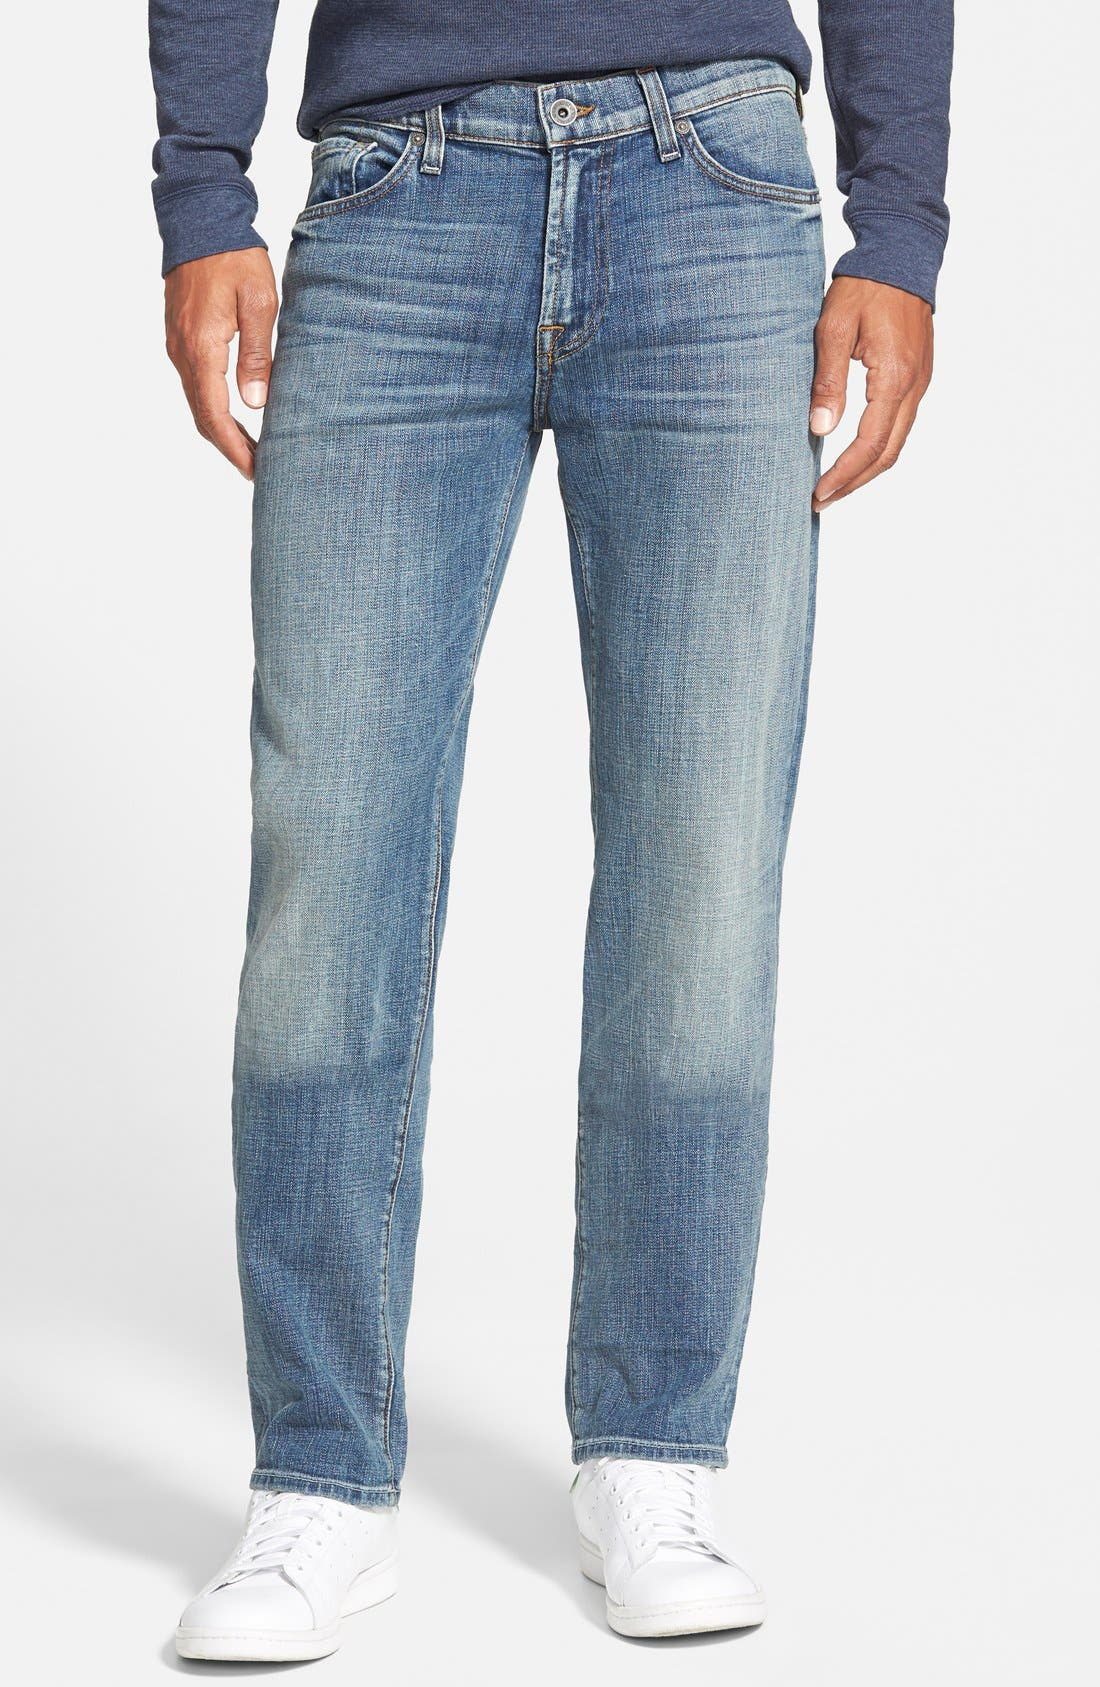 7 FOR ALL MANKIND<SUP>®</SUP>, 'Slimmy' Slim Fit Jeans, Main thumbnail 1, color, 400